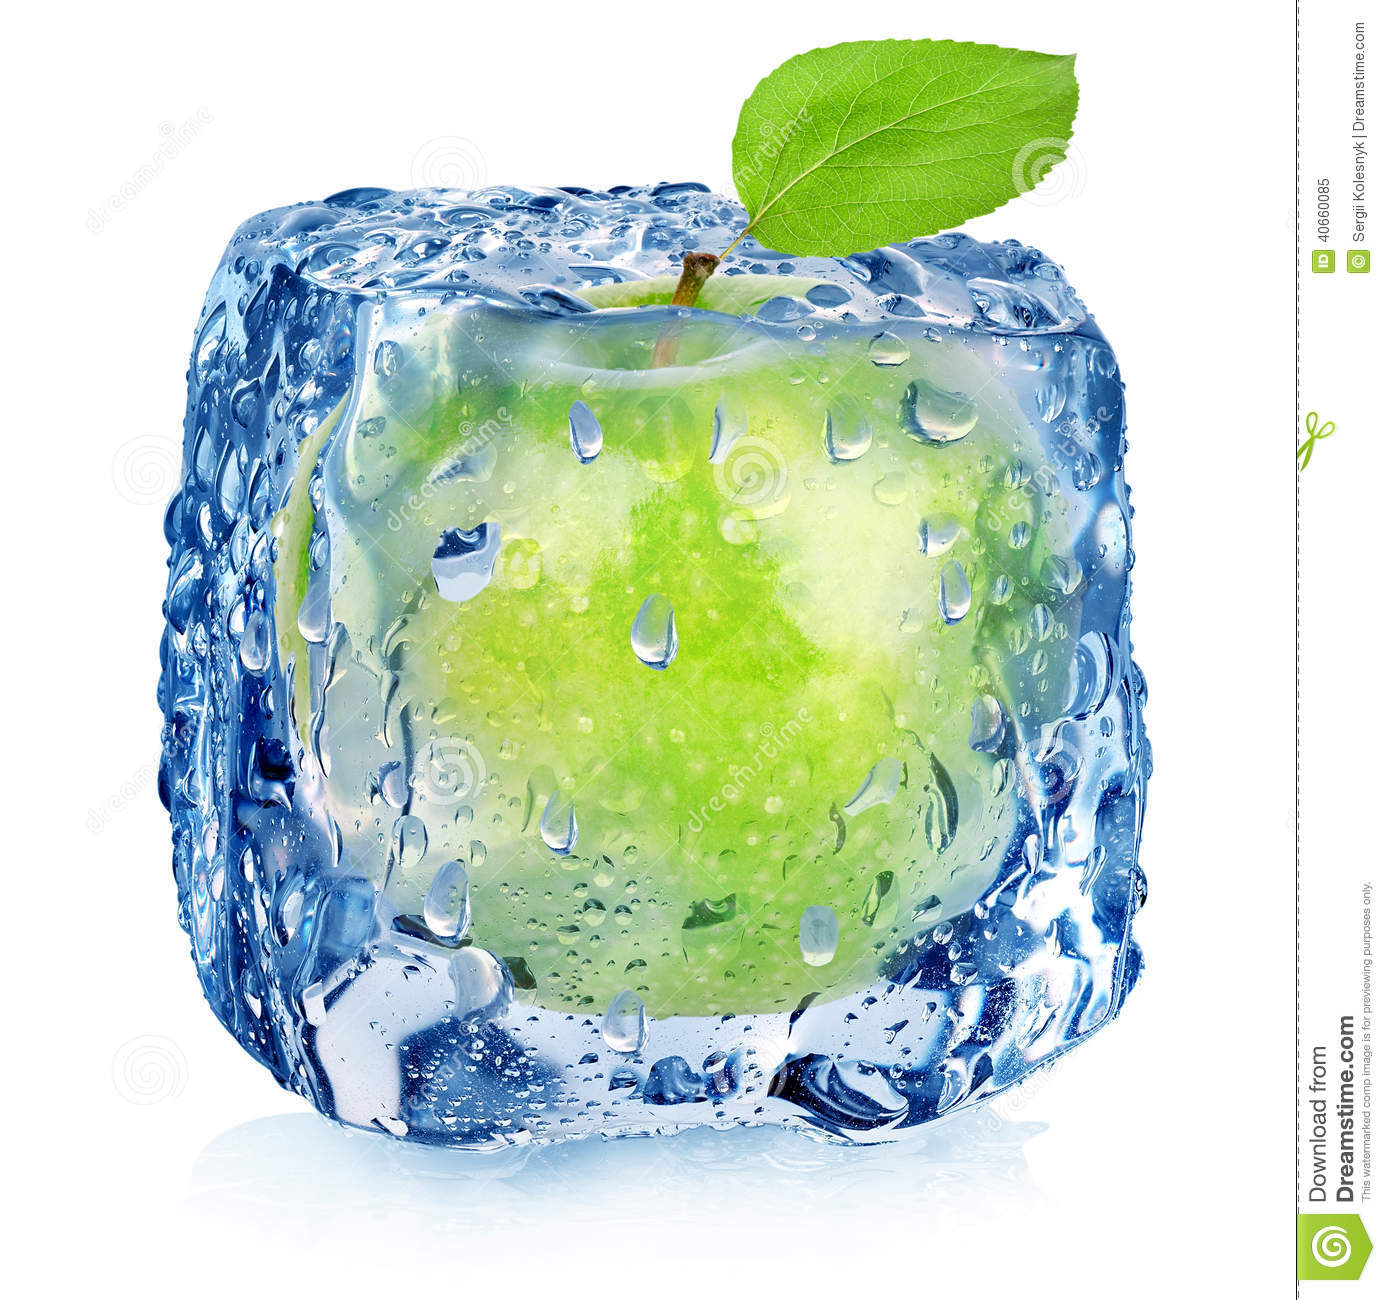 https://thumbs.dreamstime.com/z/frozen-green-apple-ice-cube-white-background-40660085.jpg